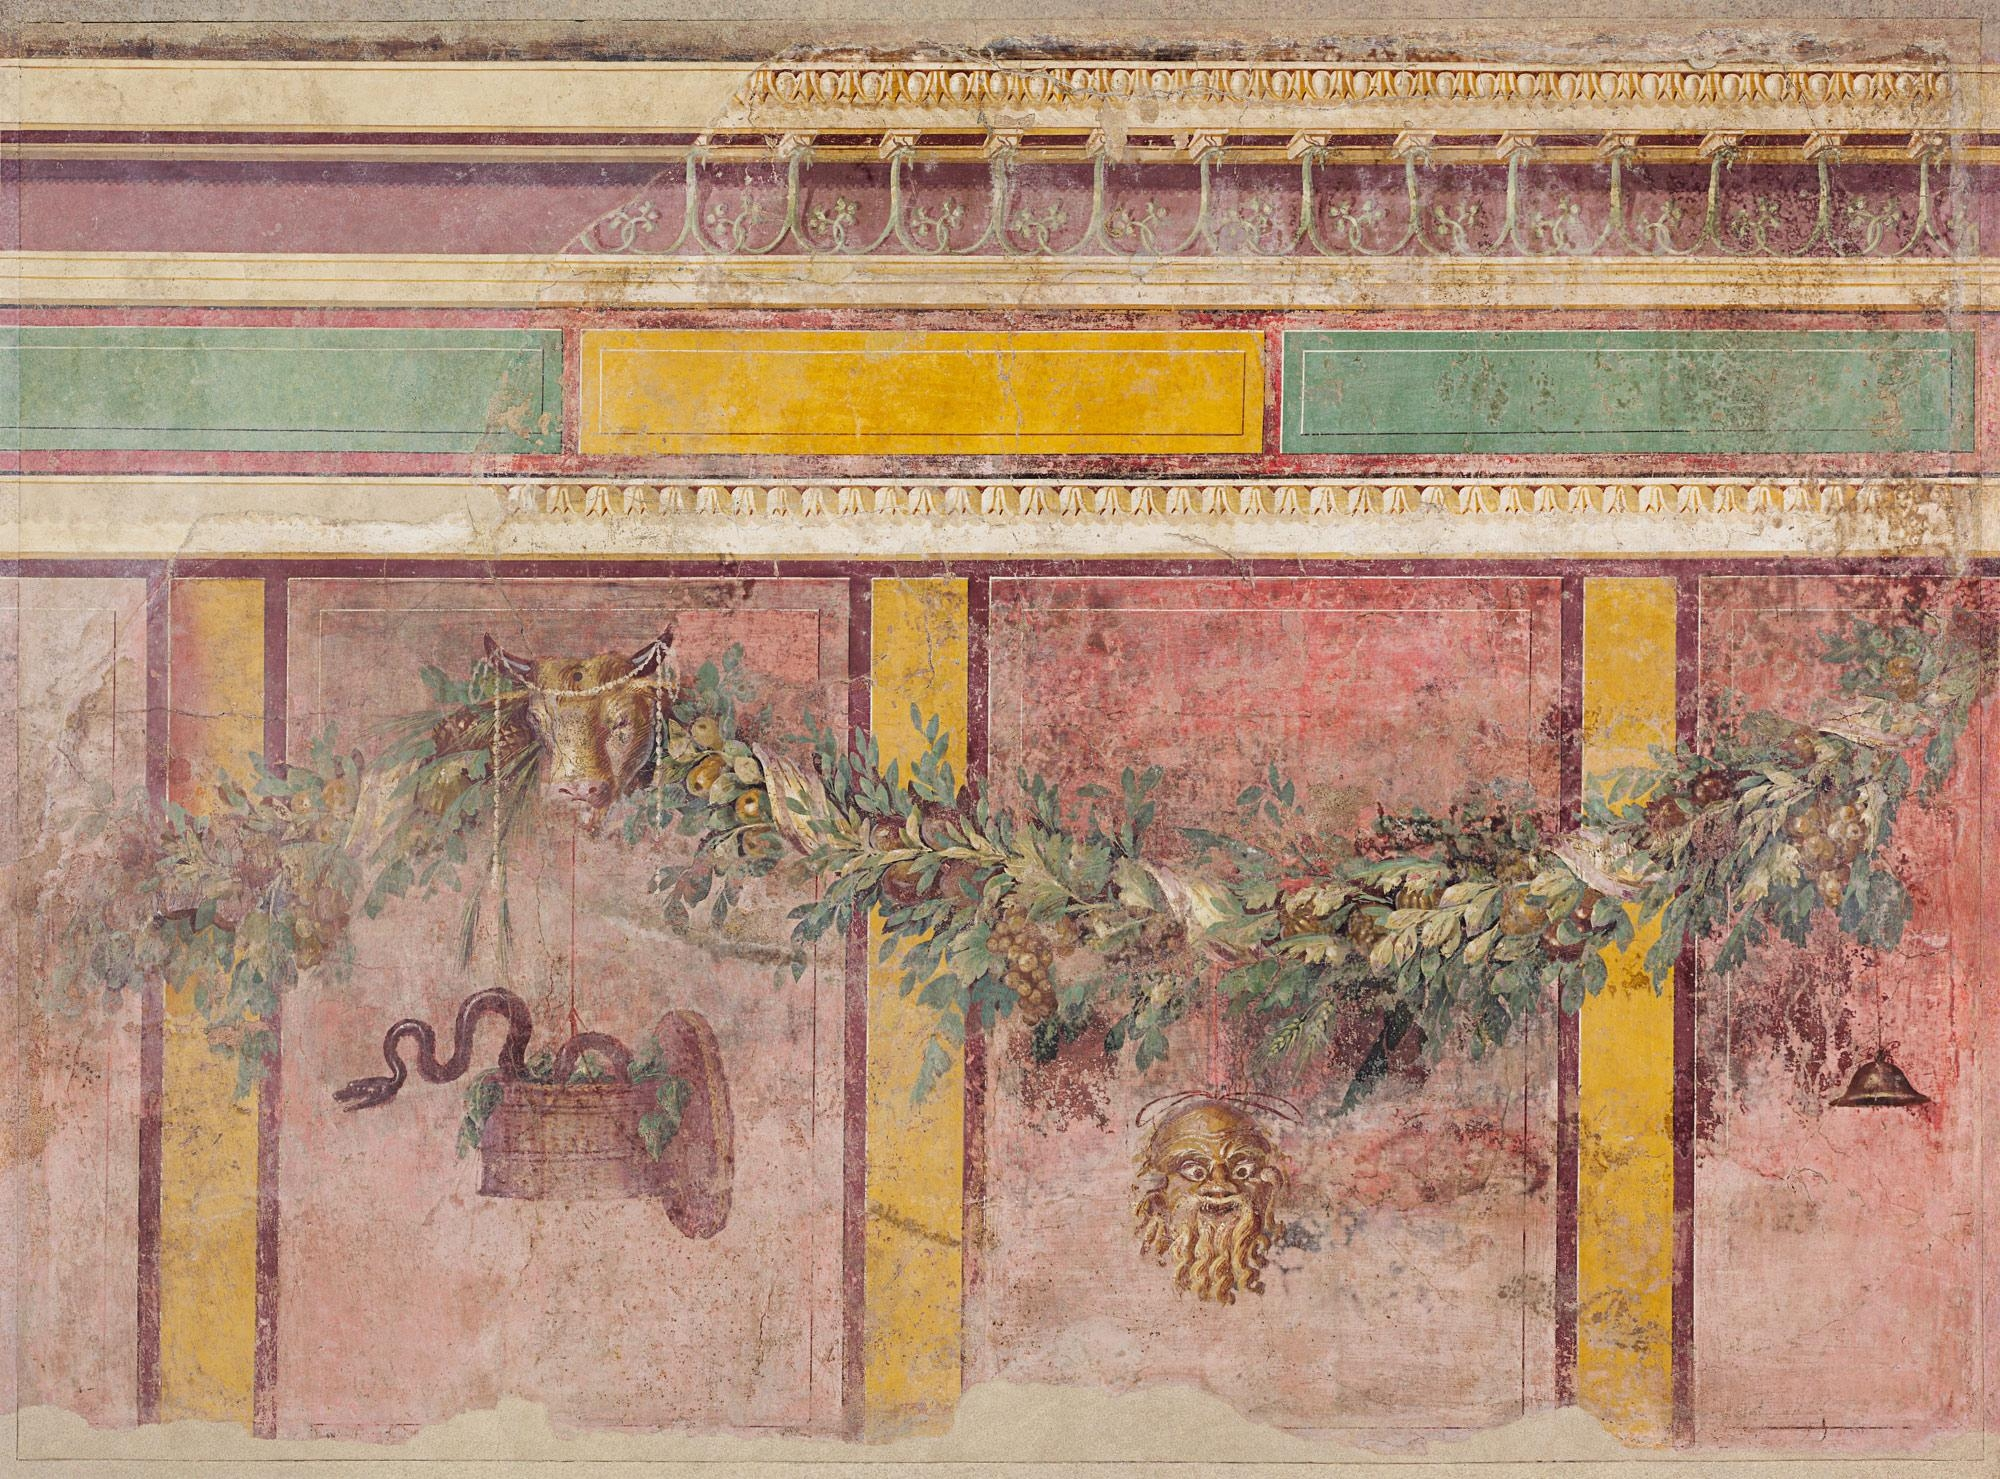 Wall Painting From The West Wall Of Room L Of The Villa Of P Within Italian Villa Wall Art (View 10 of 20)